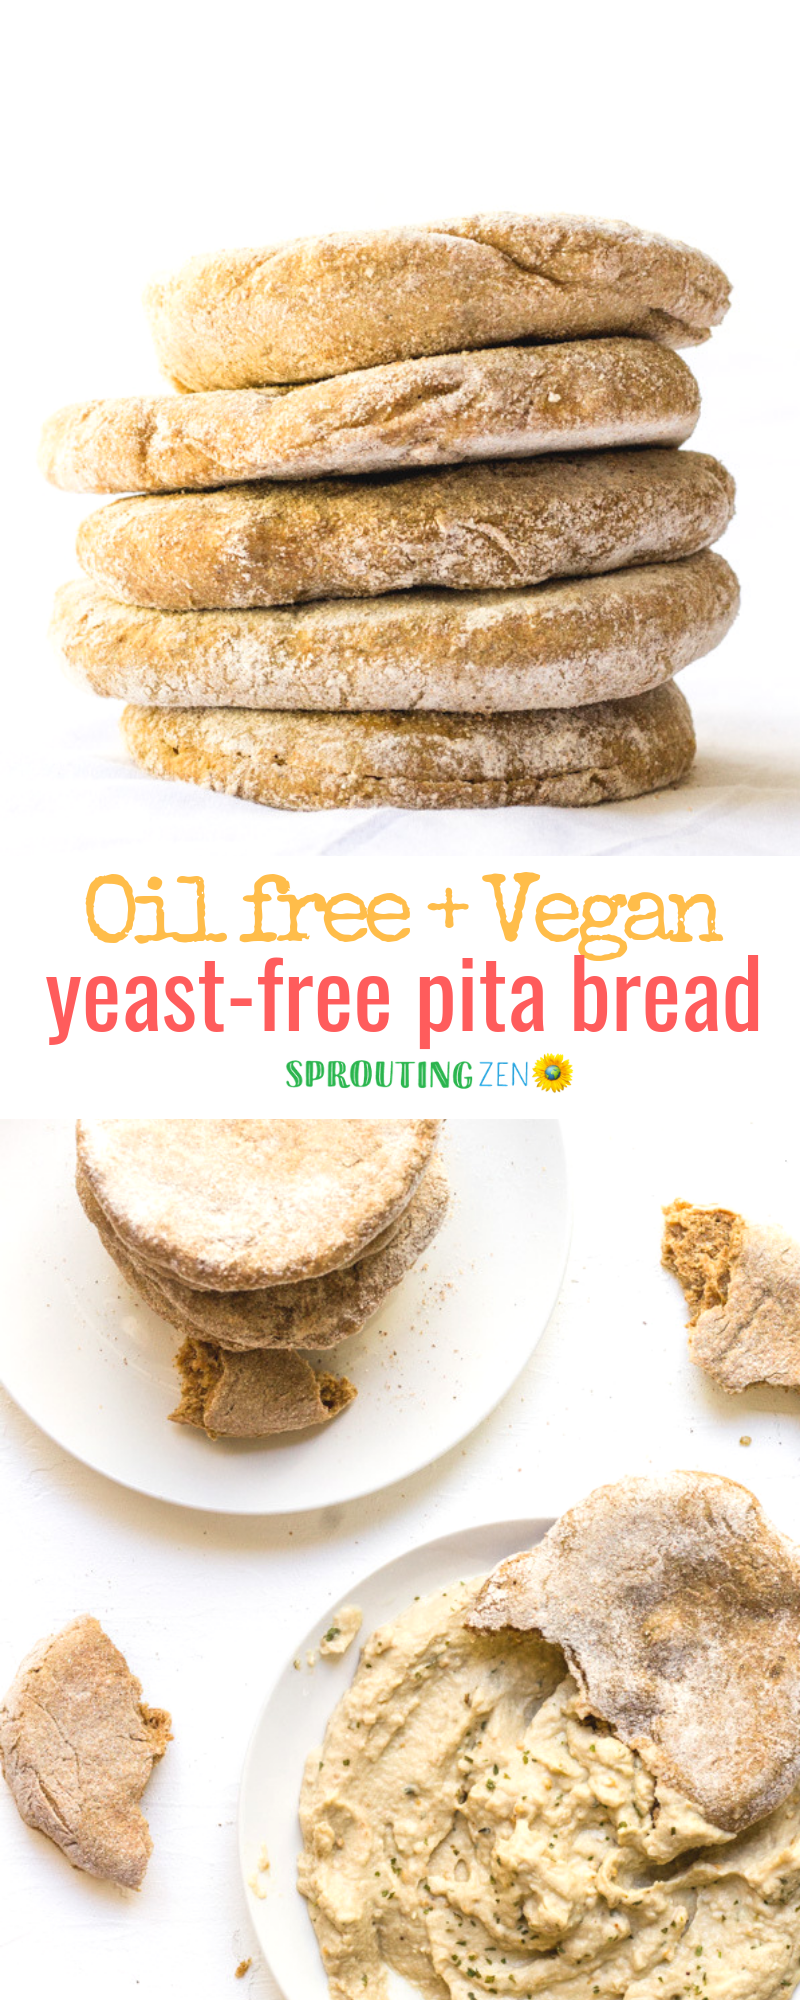 Yeast-free spelt flour pita bread that is so yum and fluffy! Oil free too! #vegan #plantbased | Sprouting Zen